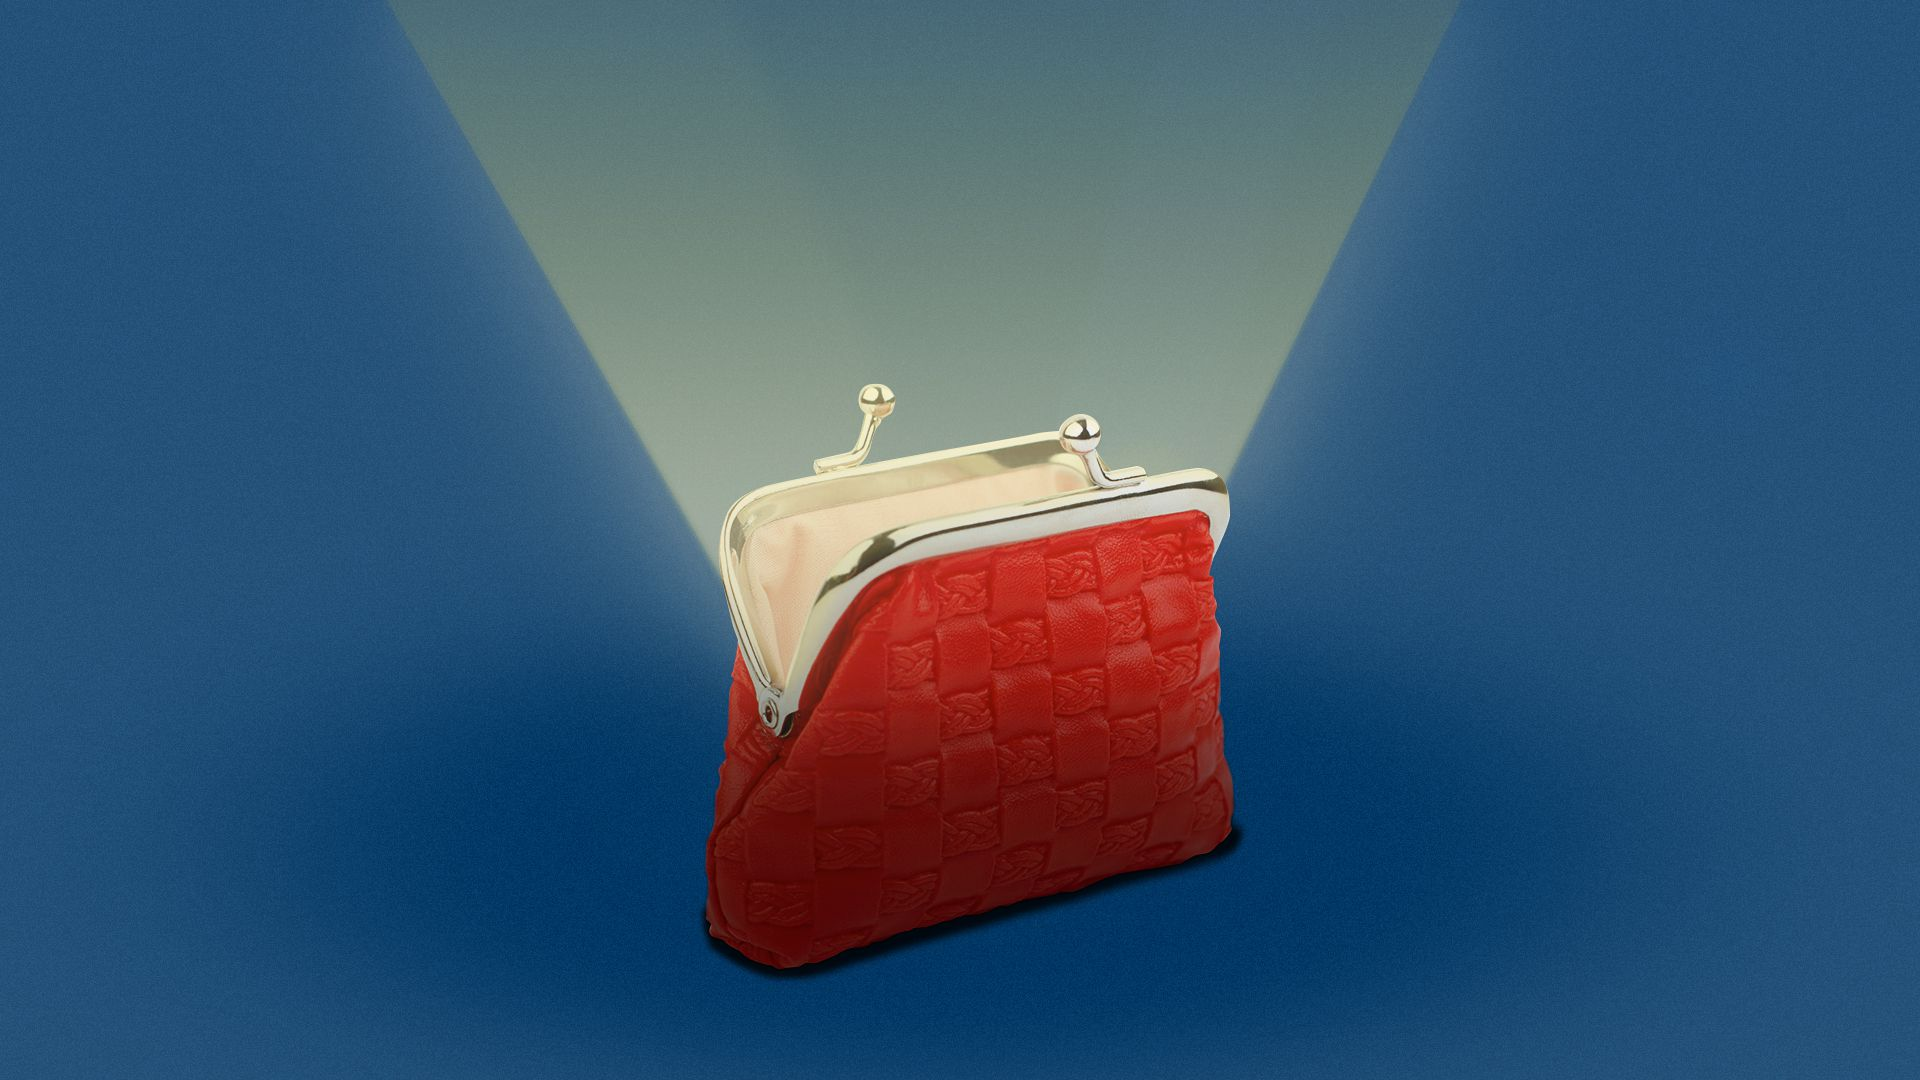 Illustration of a coin purse opening up and light radiating from the inside.